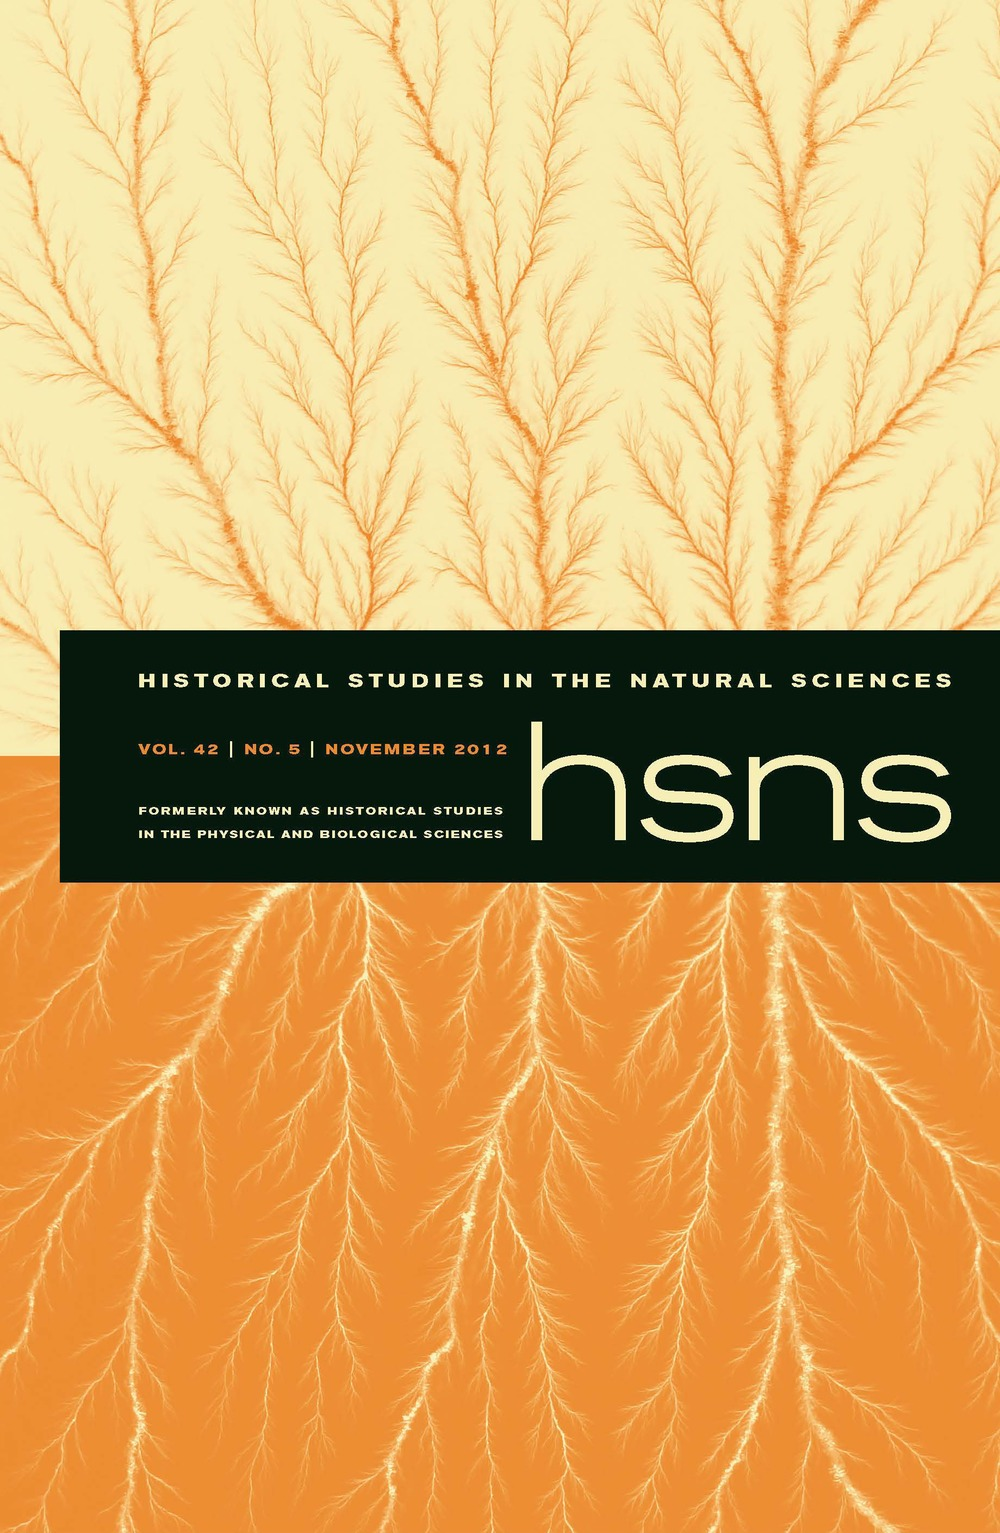 hsns.2012.42.5.COVER_Page_2.jpg